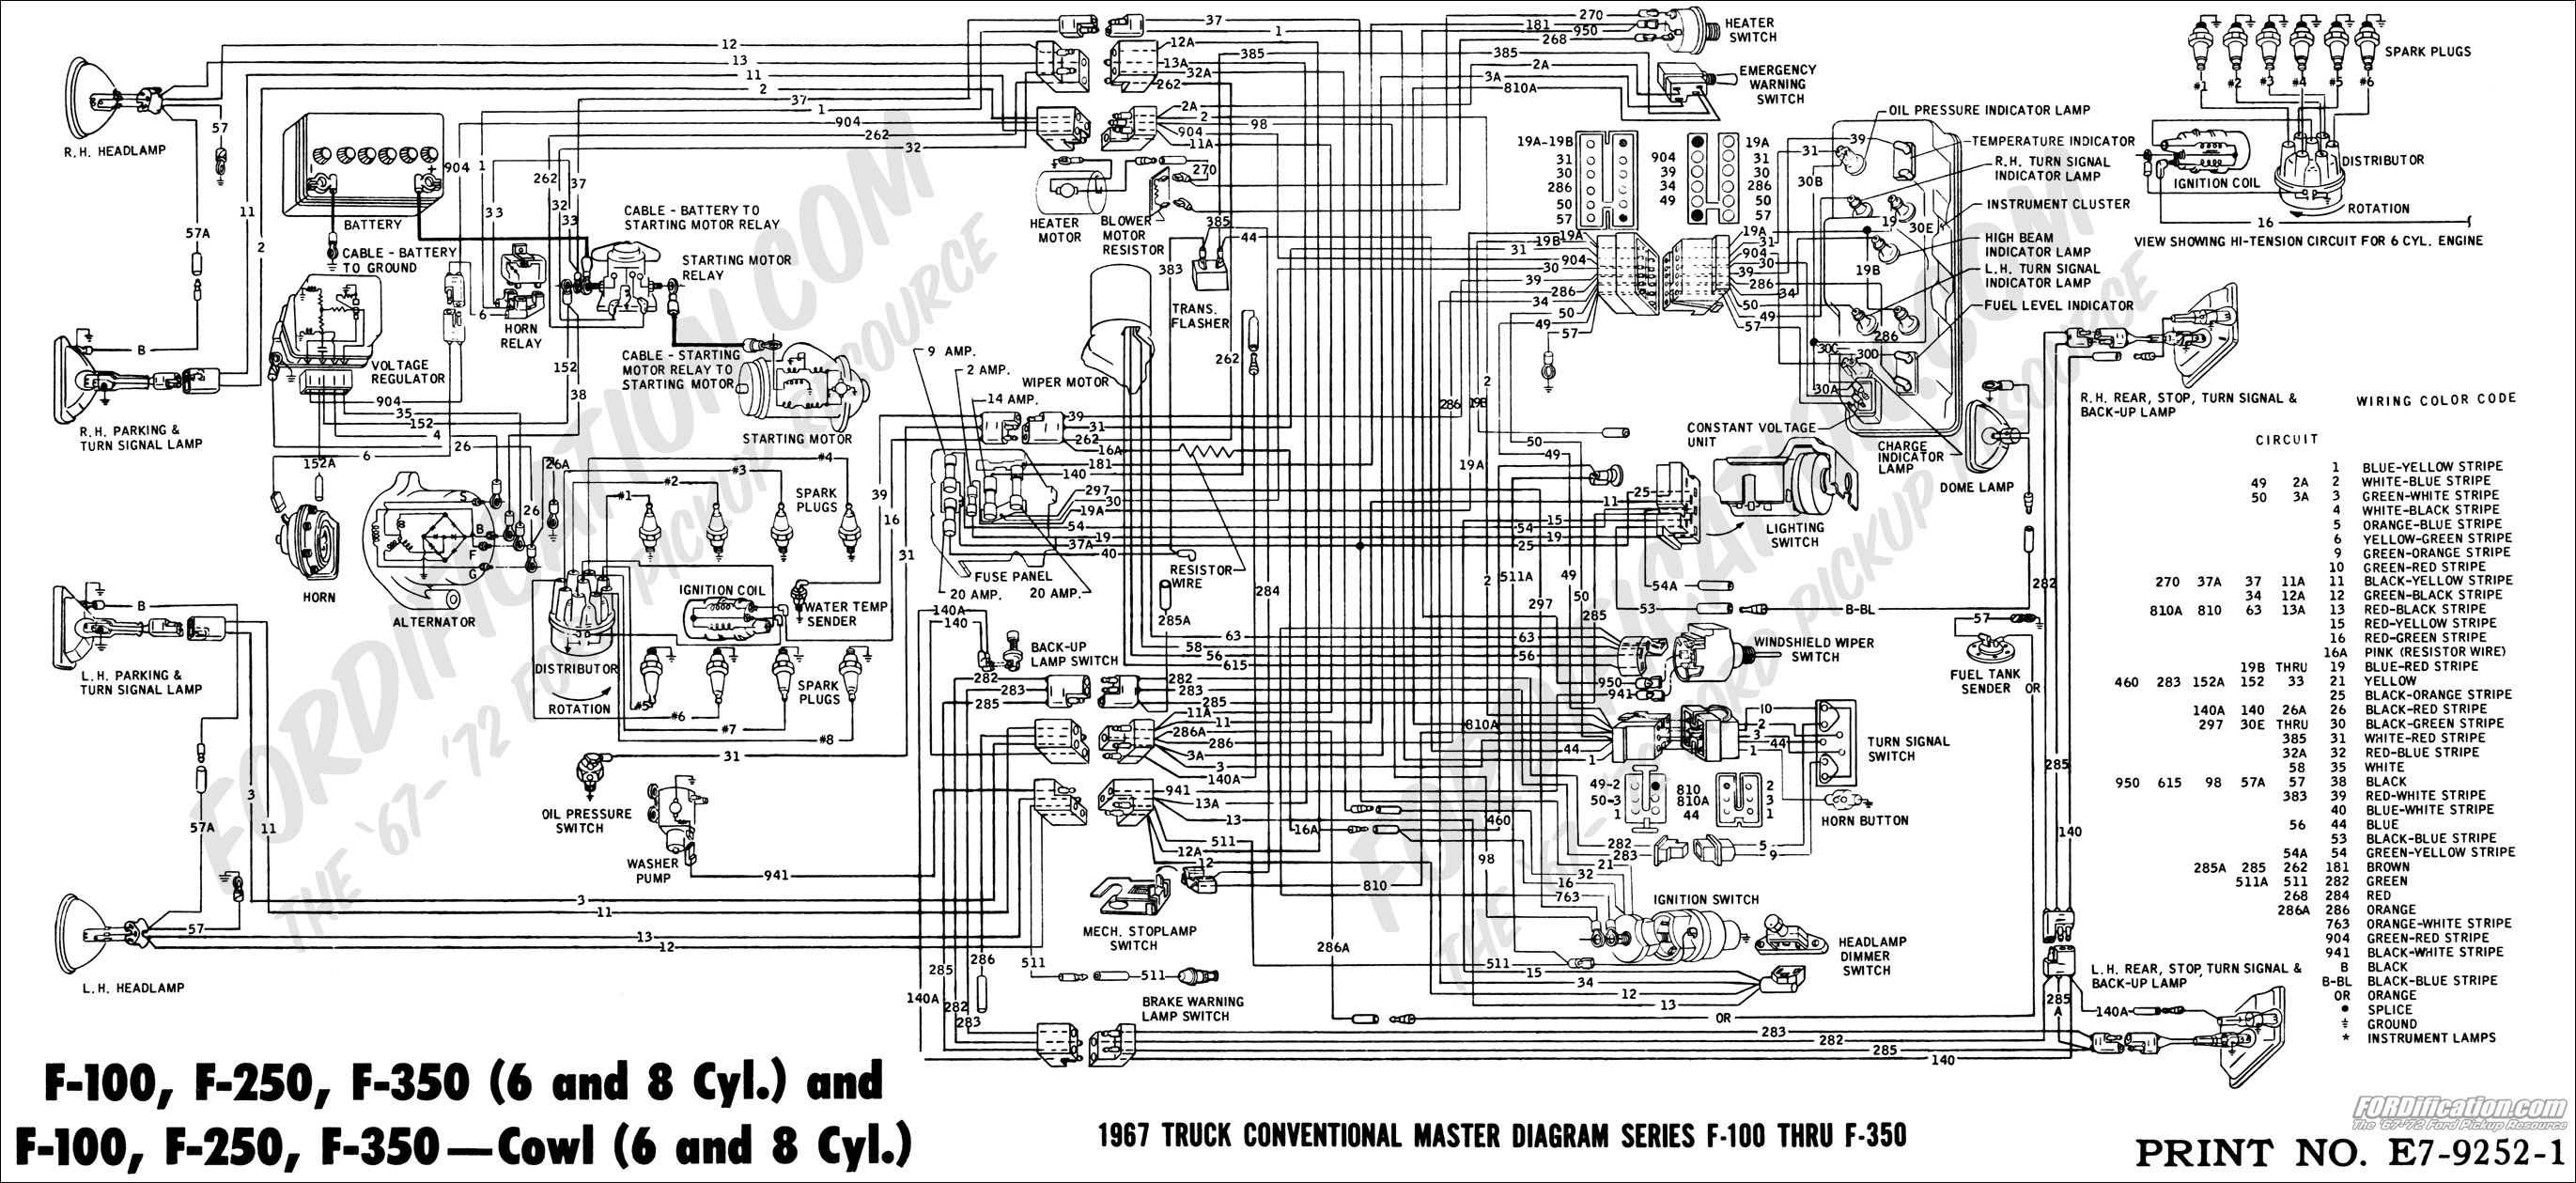 ford truck technical drawings and schematics section h wiring rh fordification com 1970 ford f100 wiring diagram 1955 ford f100 wiring diagram